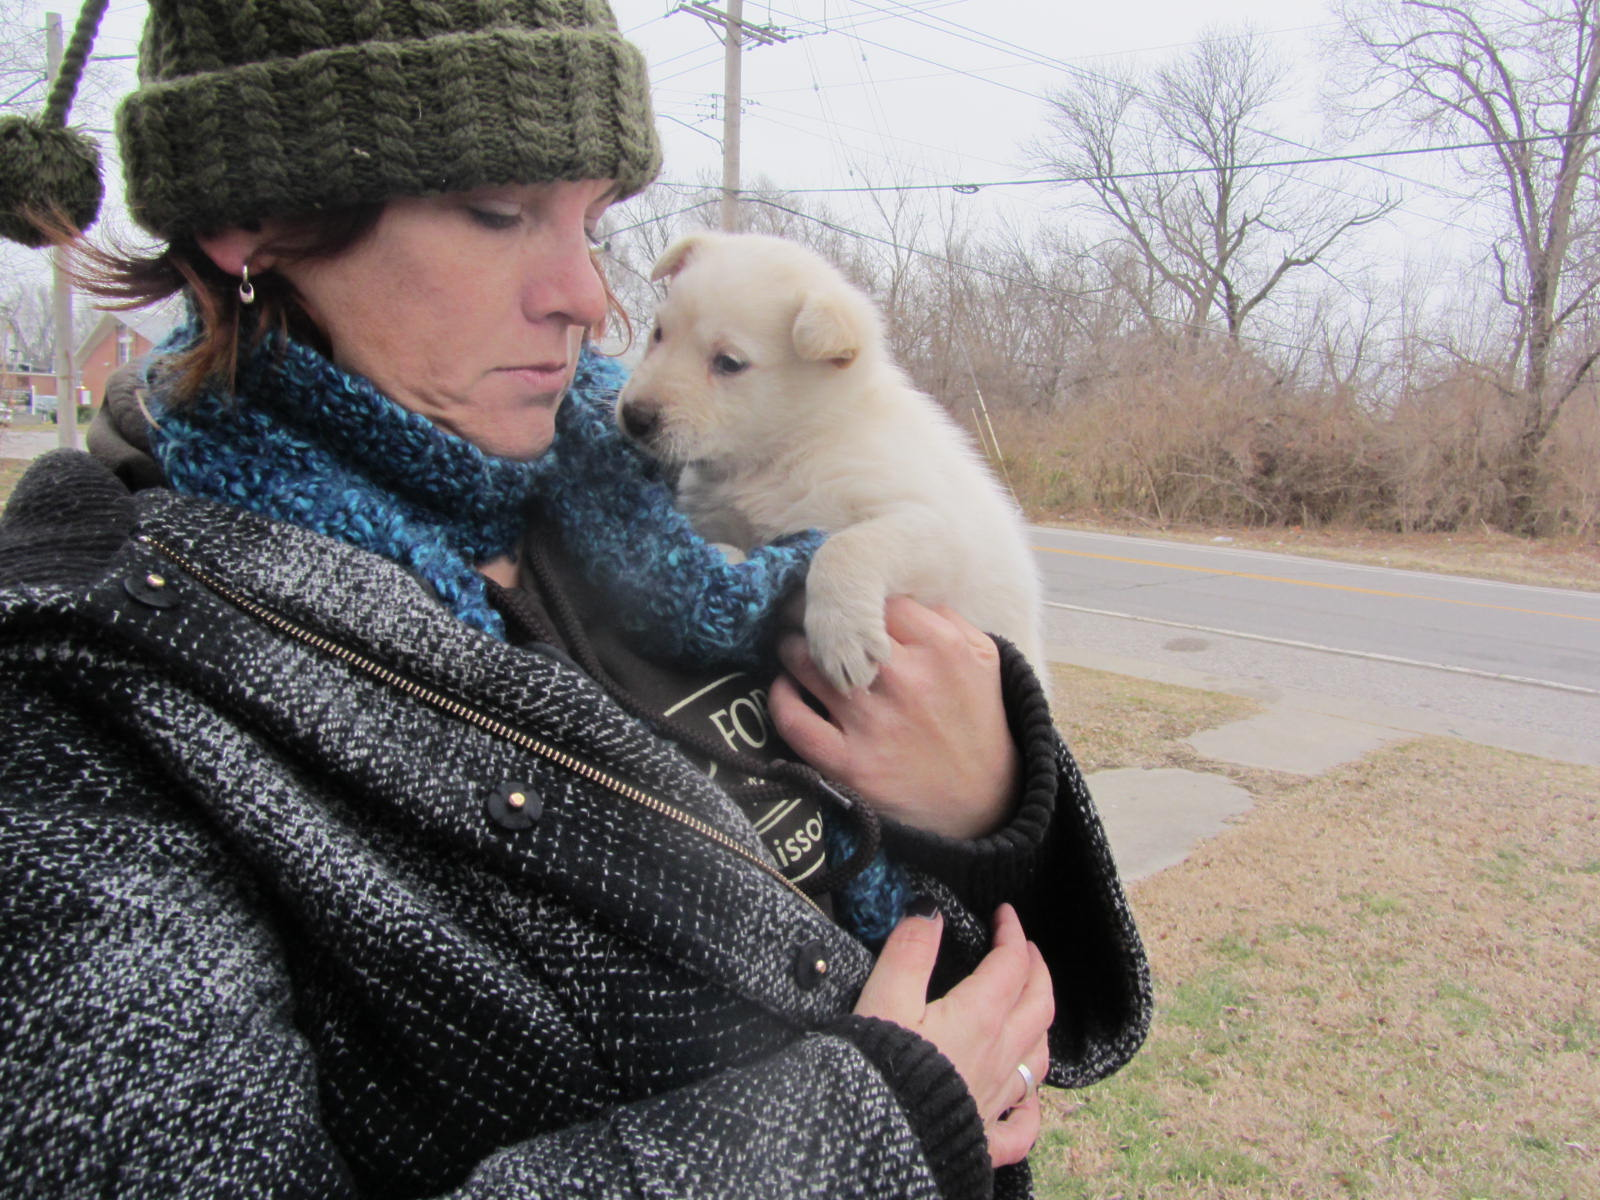 Karen Goodman with East St. Louis puppy